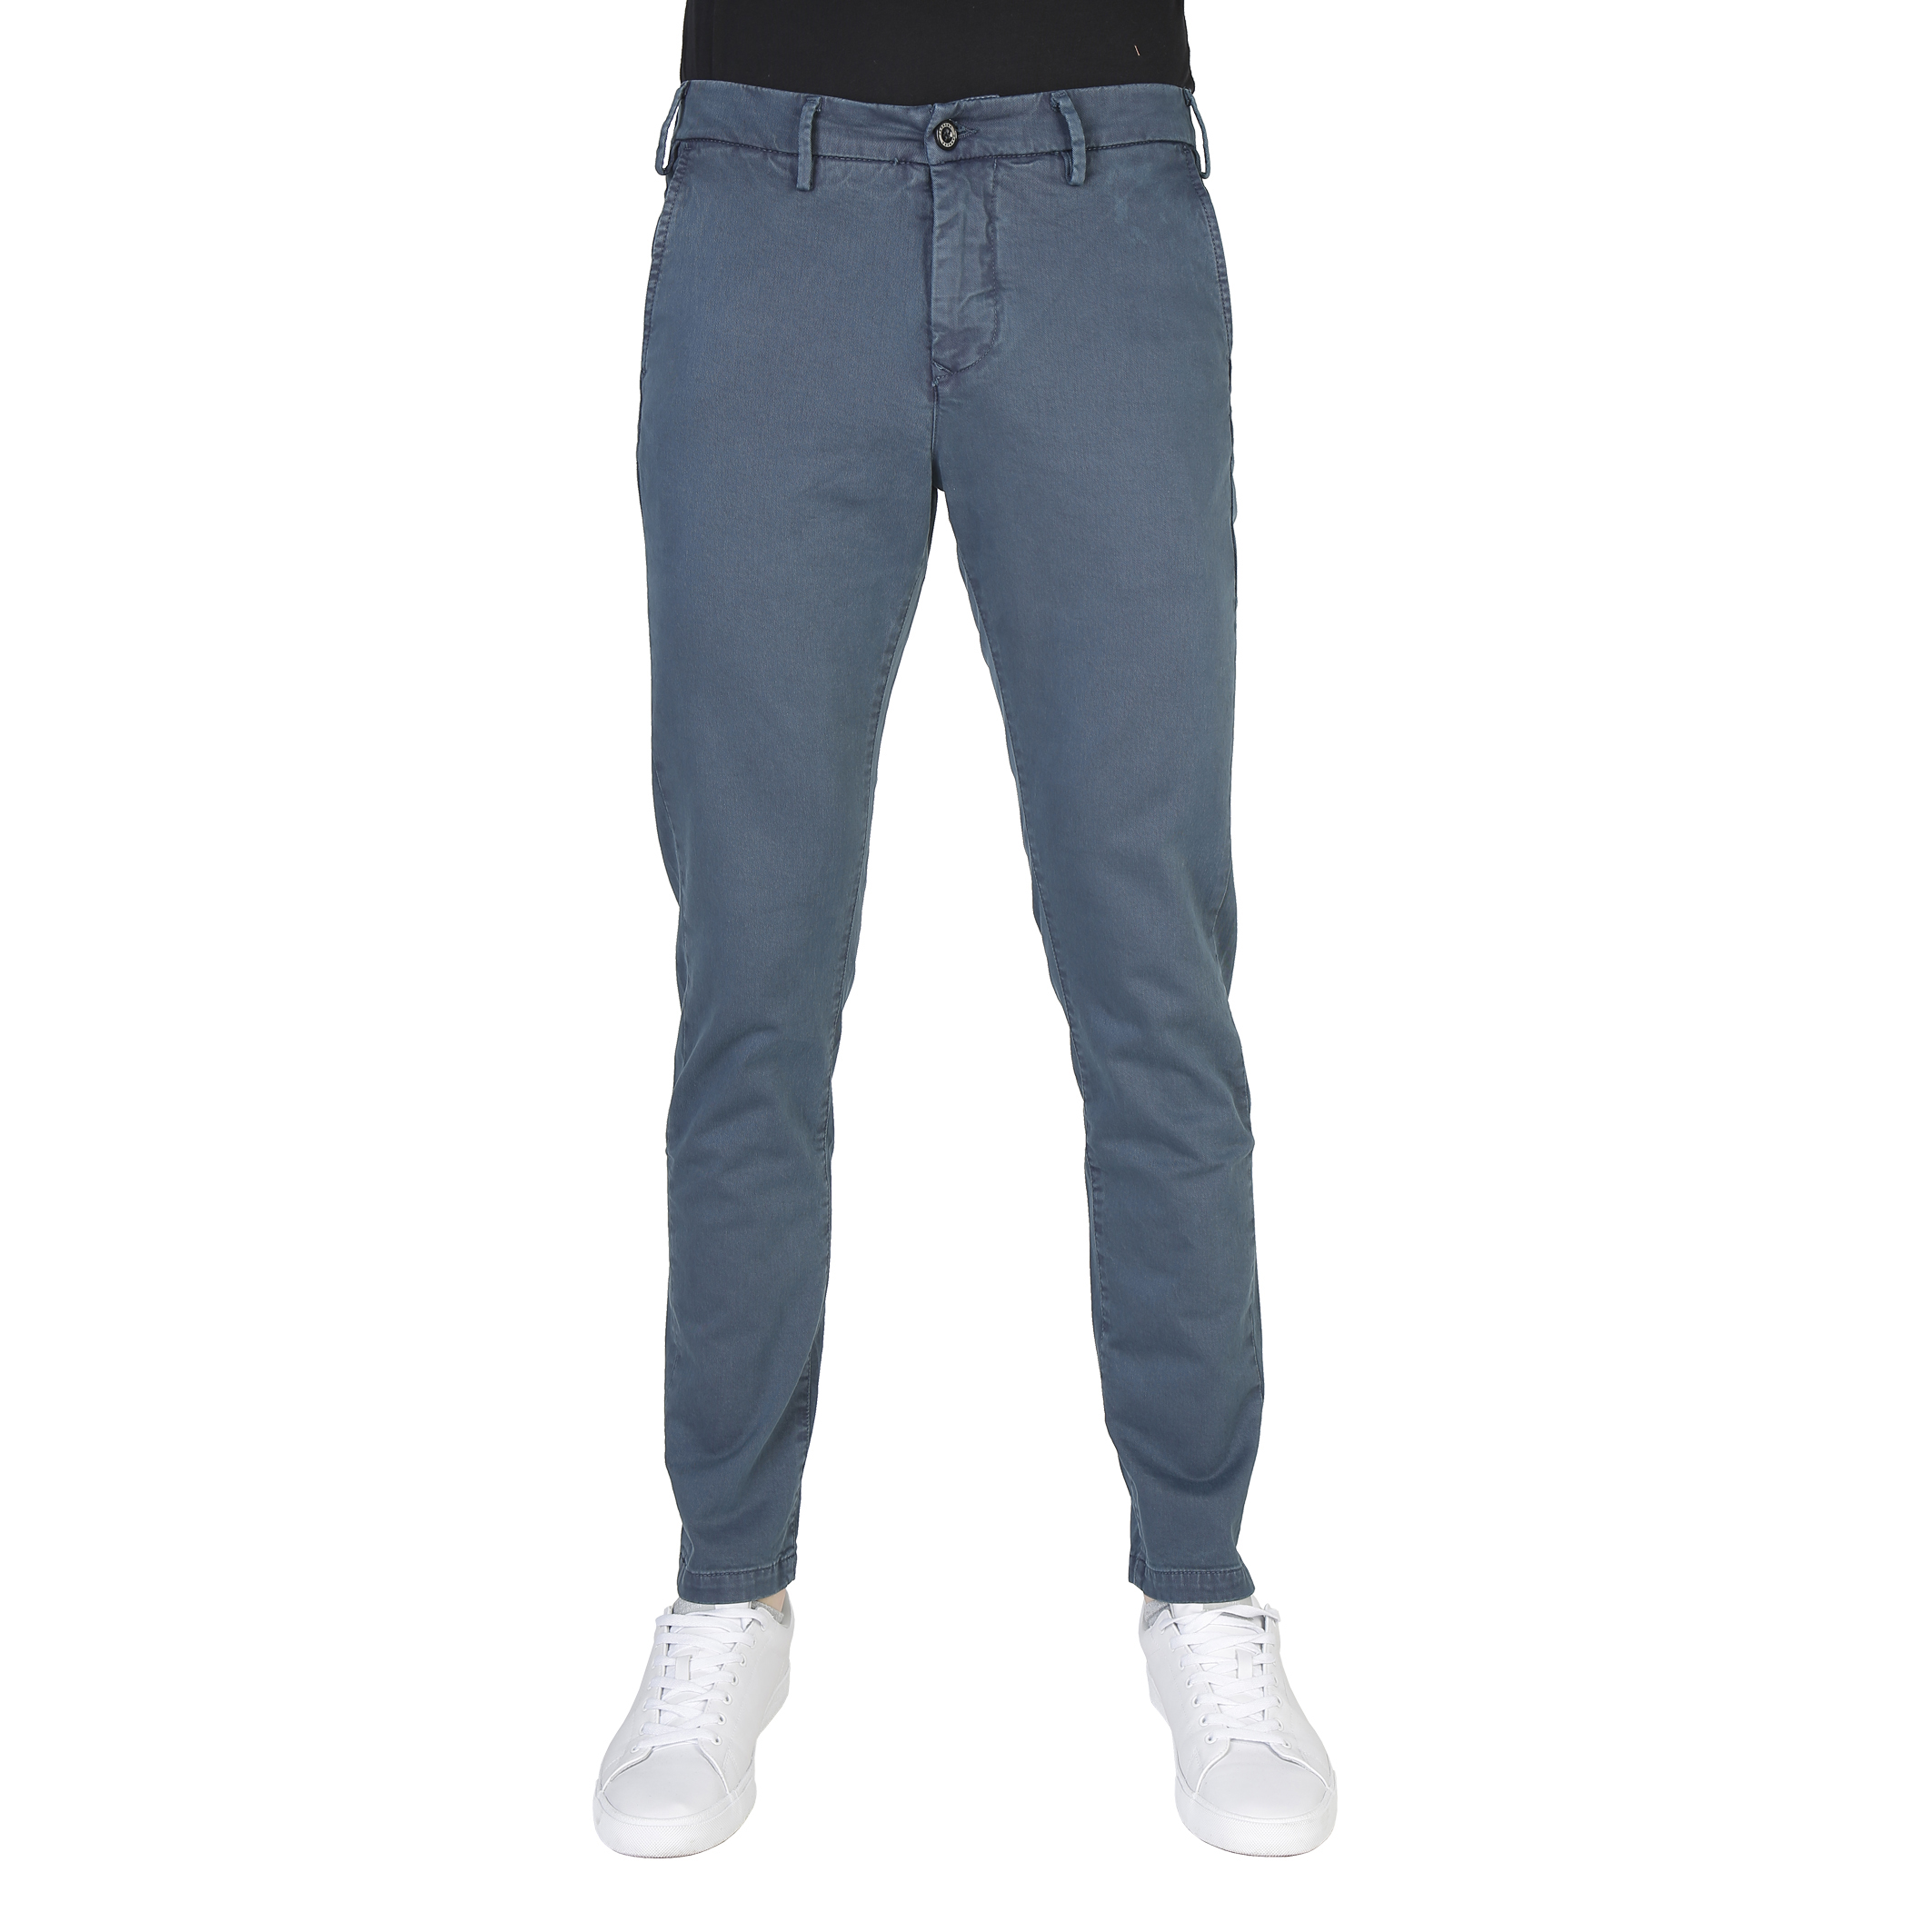 Jeans  Carrera Jeans 00T617_0845A blue